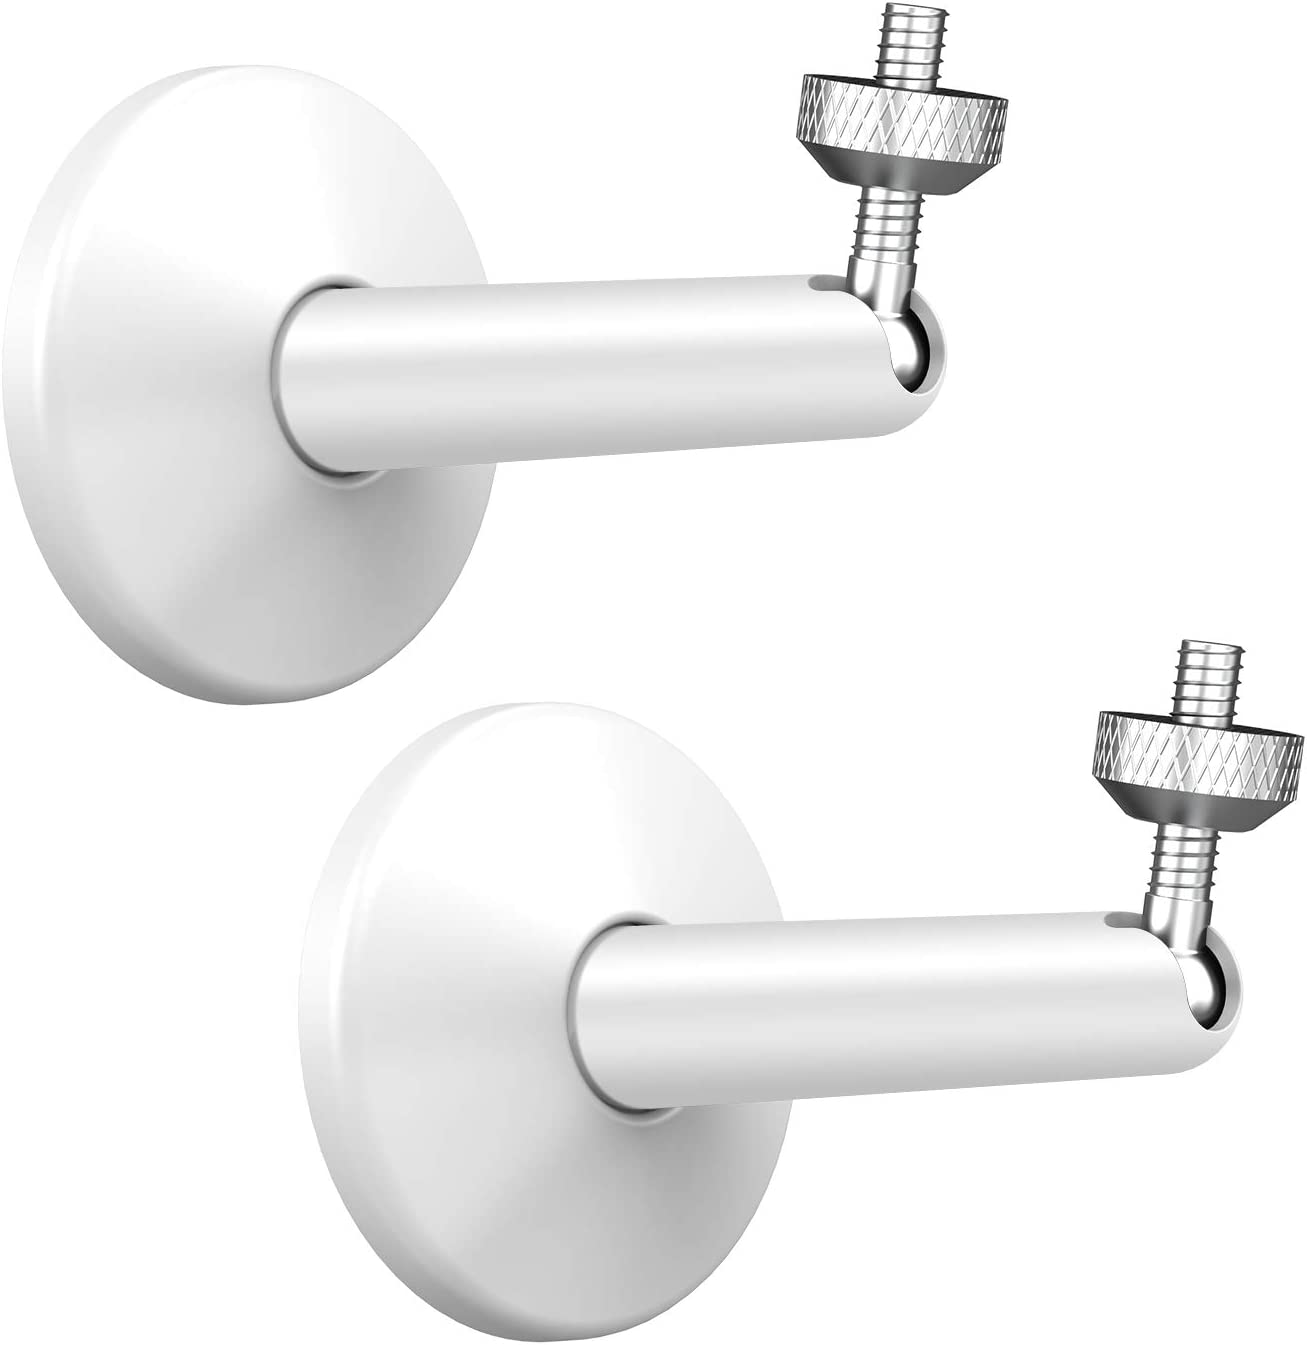 Arlo Mount, KIWI design Adjustable Security Wall Mount Aluminium Alloy Indoor/Outdoor Mount for Arlo, Arlo Pro, Arlo Pro 2, Arlo Ultra & Other Camera Models with 1/4 Inch Thread (2Pack, White)